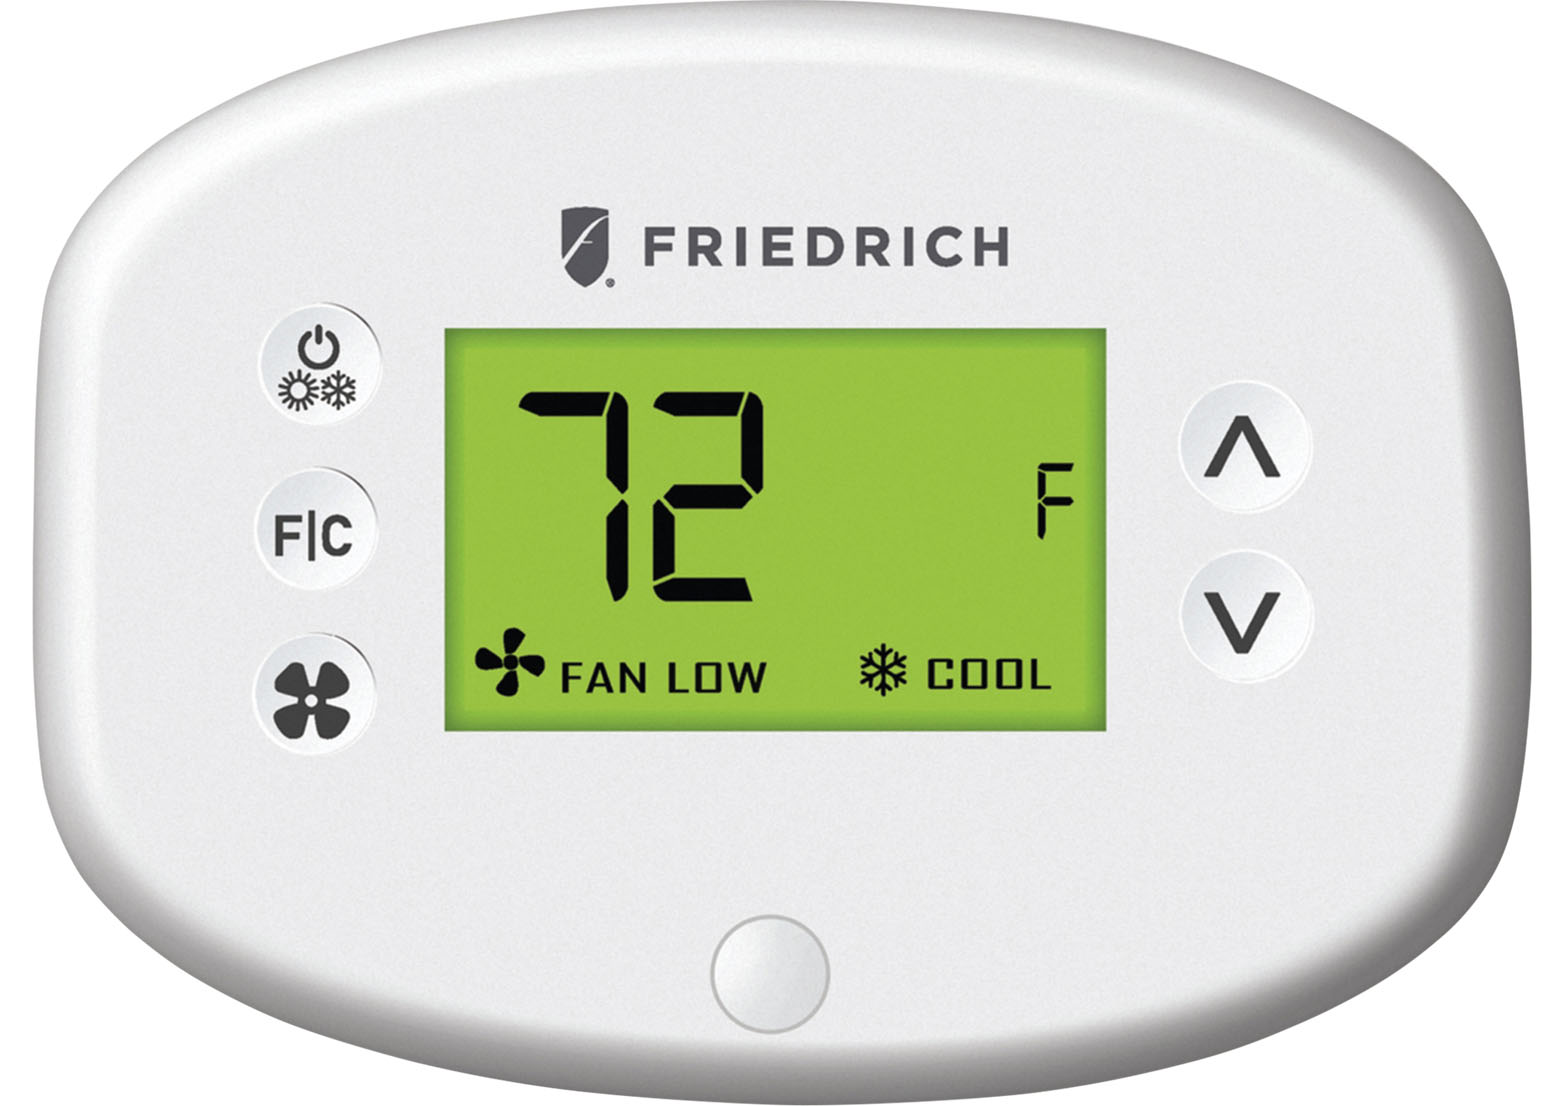 Friedrich VRPXEMWRT2 Energy Management Wireless Digital Remote Wall Thermostat with Occupancy Sensor - Non Programmable